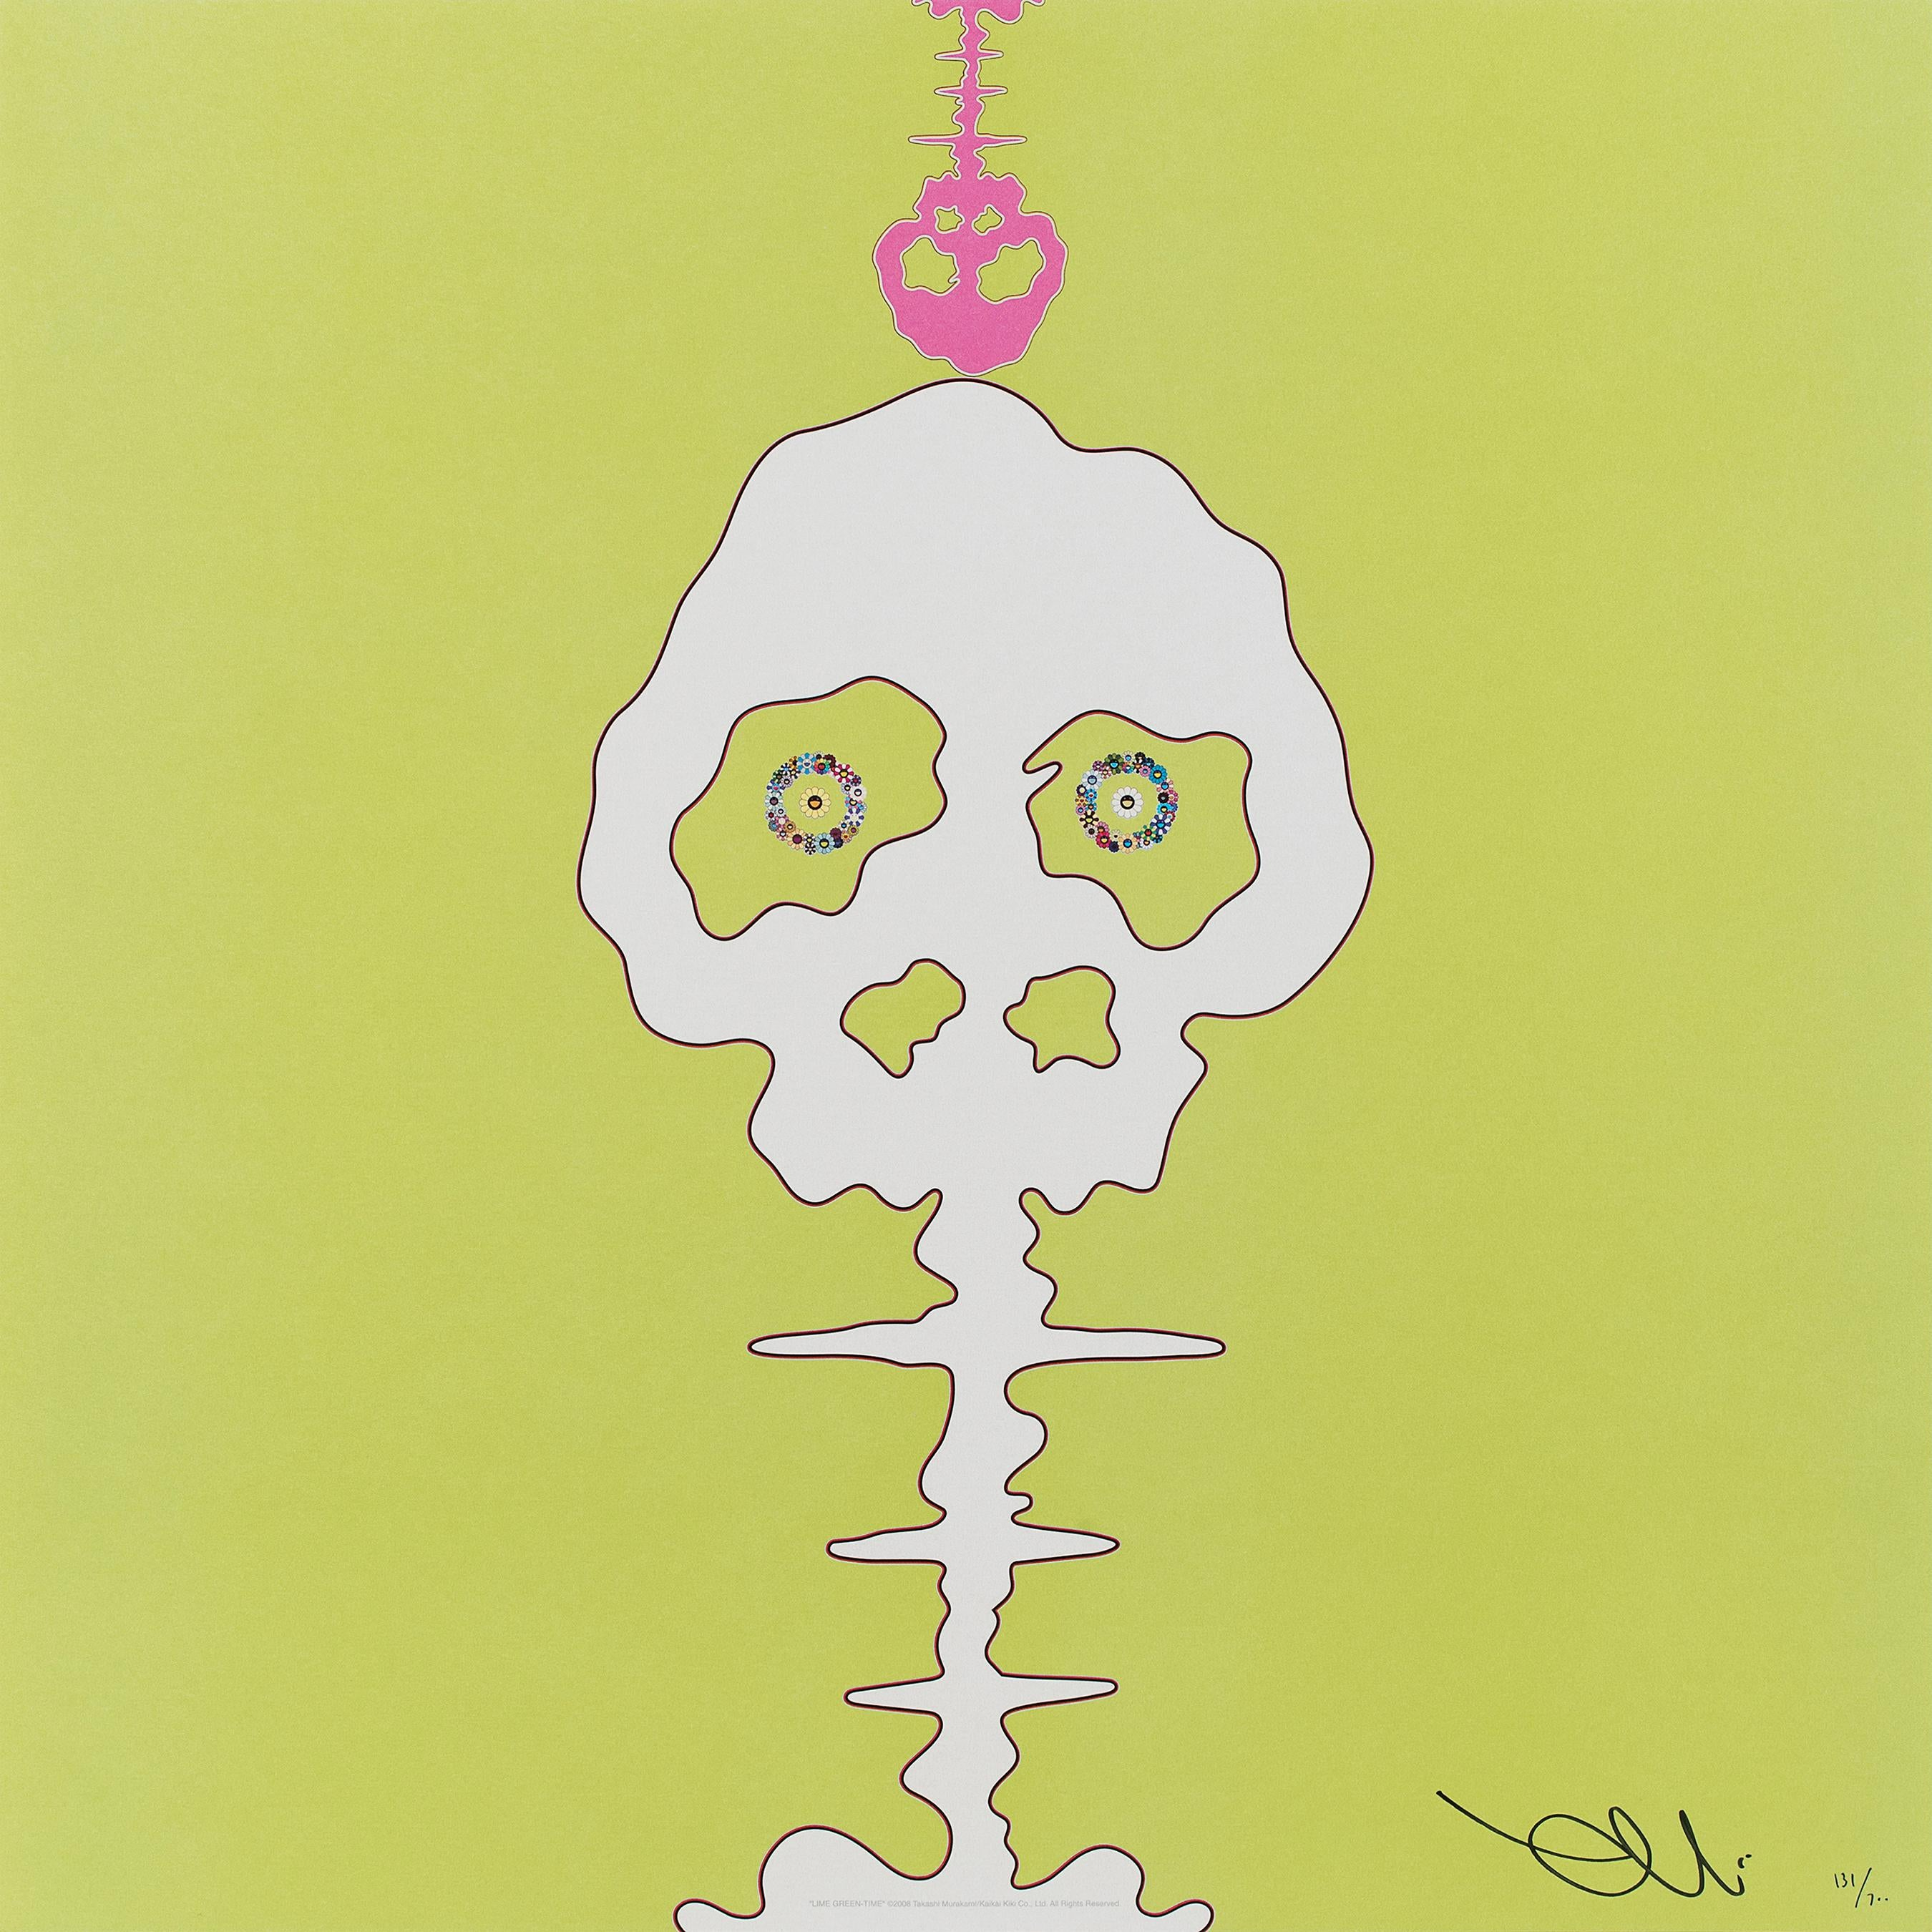 Lime Green - Time (Time Bokan) 2011 Limited Edition (print) by Murakami signed